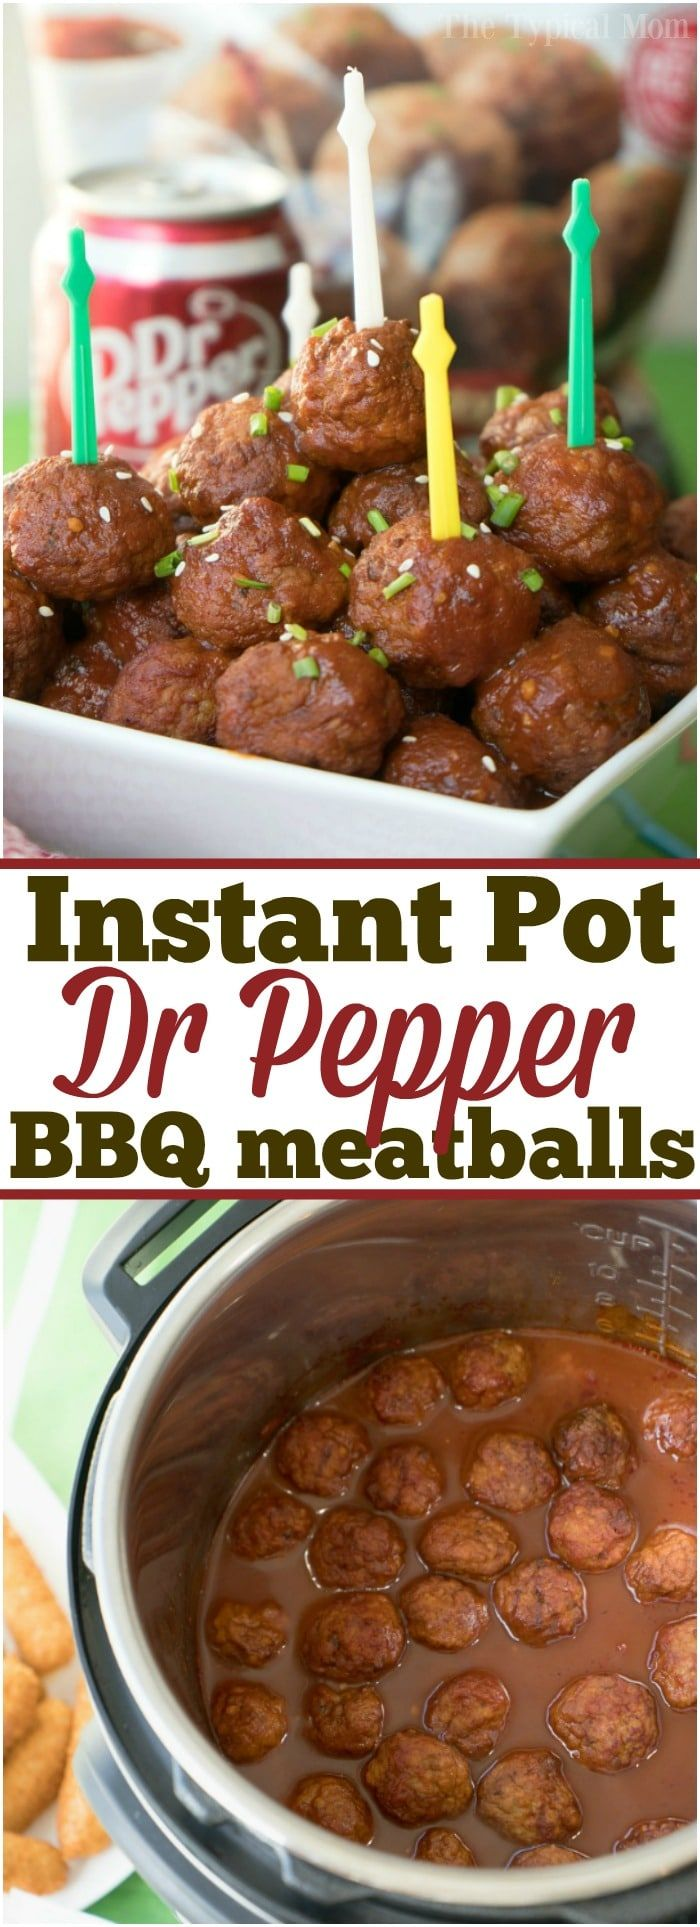 The perfect Instant Pot Dr Pepper BBQ Meatballs are here for your next big party or the big game!